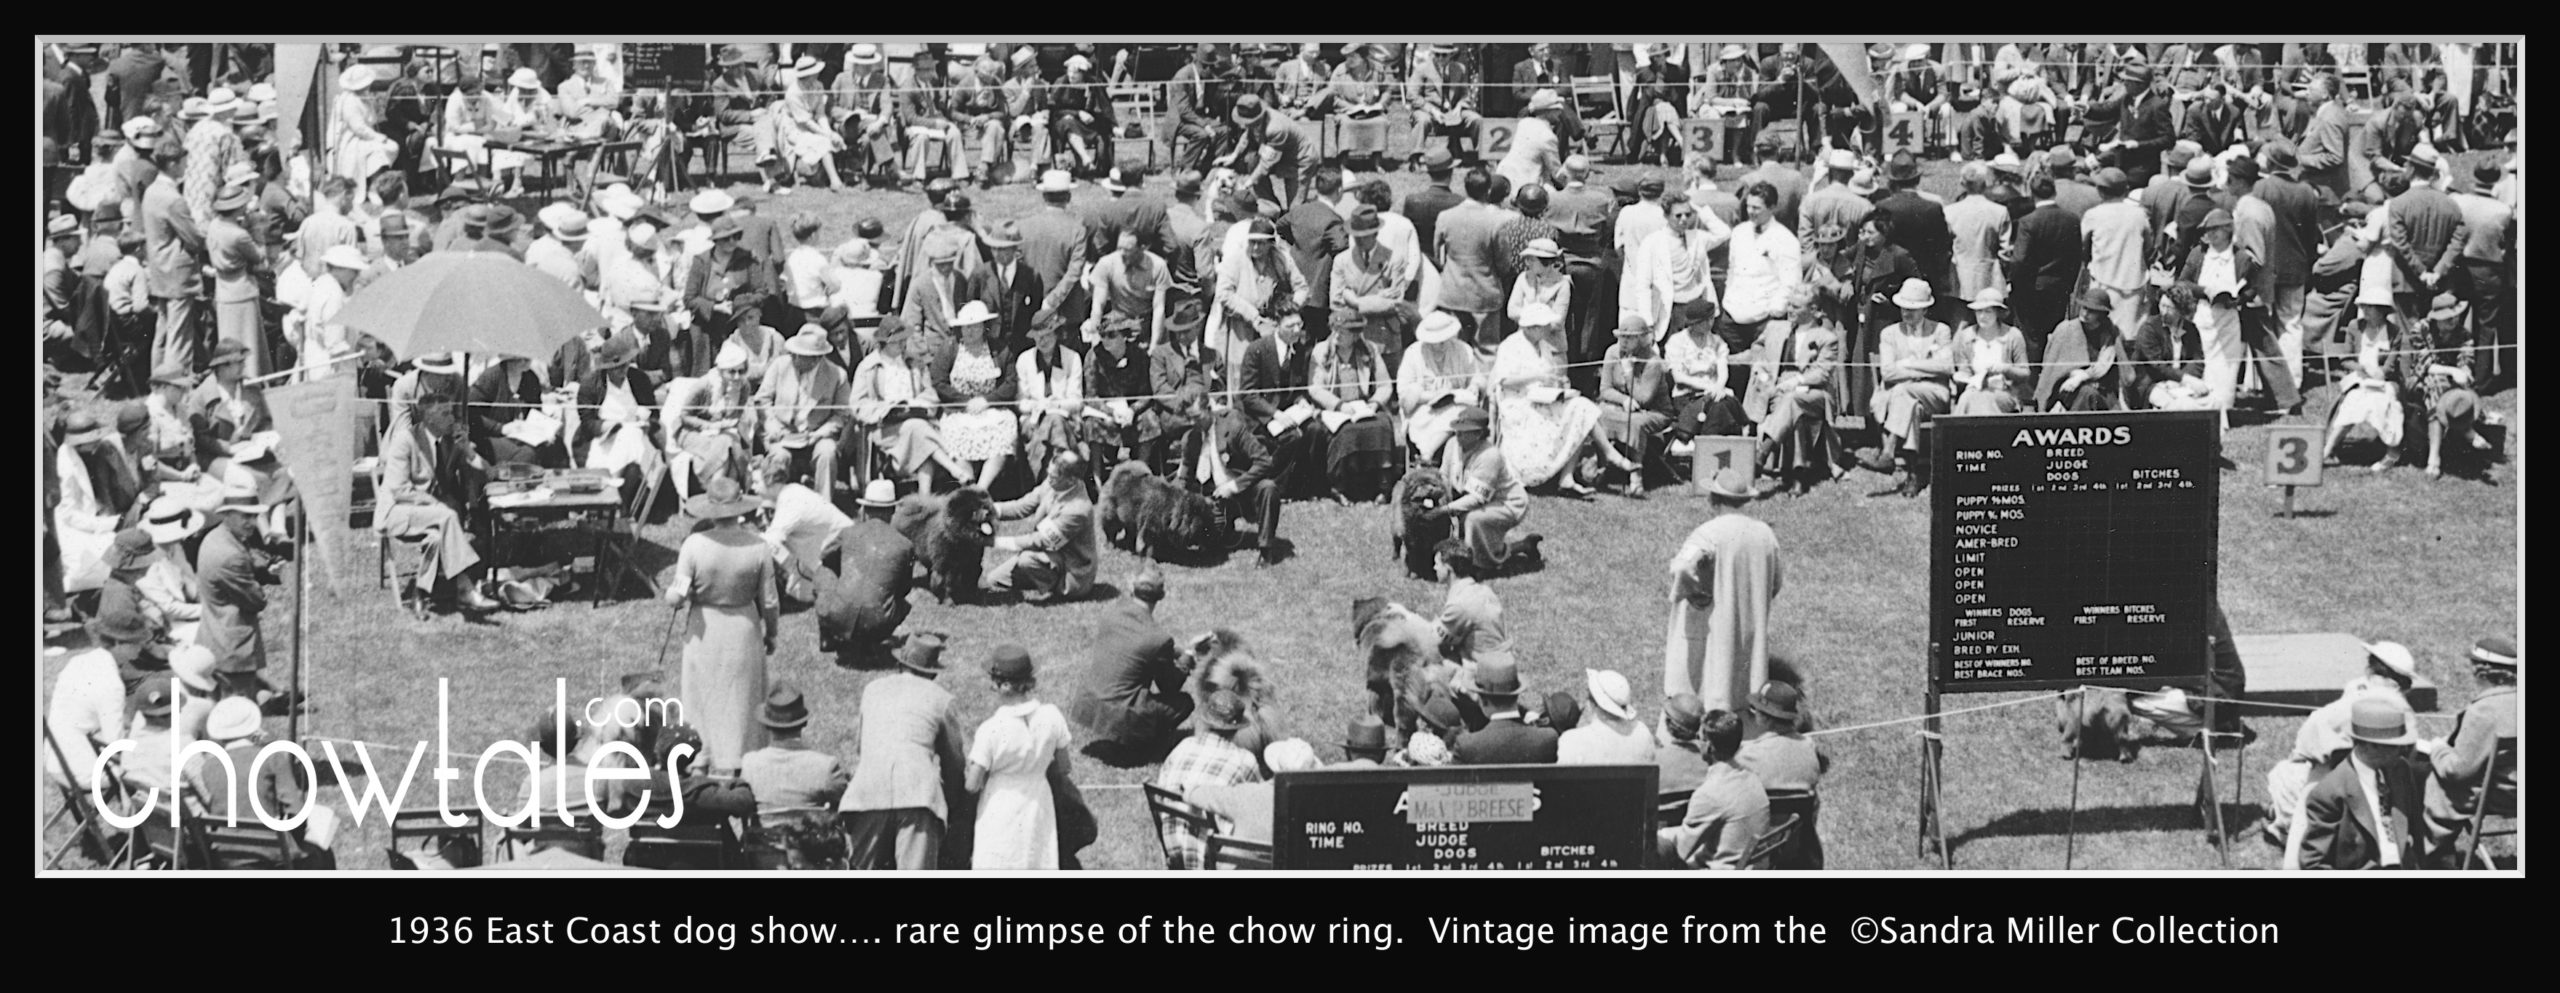 1936 RING FULL OF CHOWS - Version 4 (1 of 1)